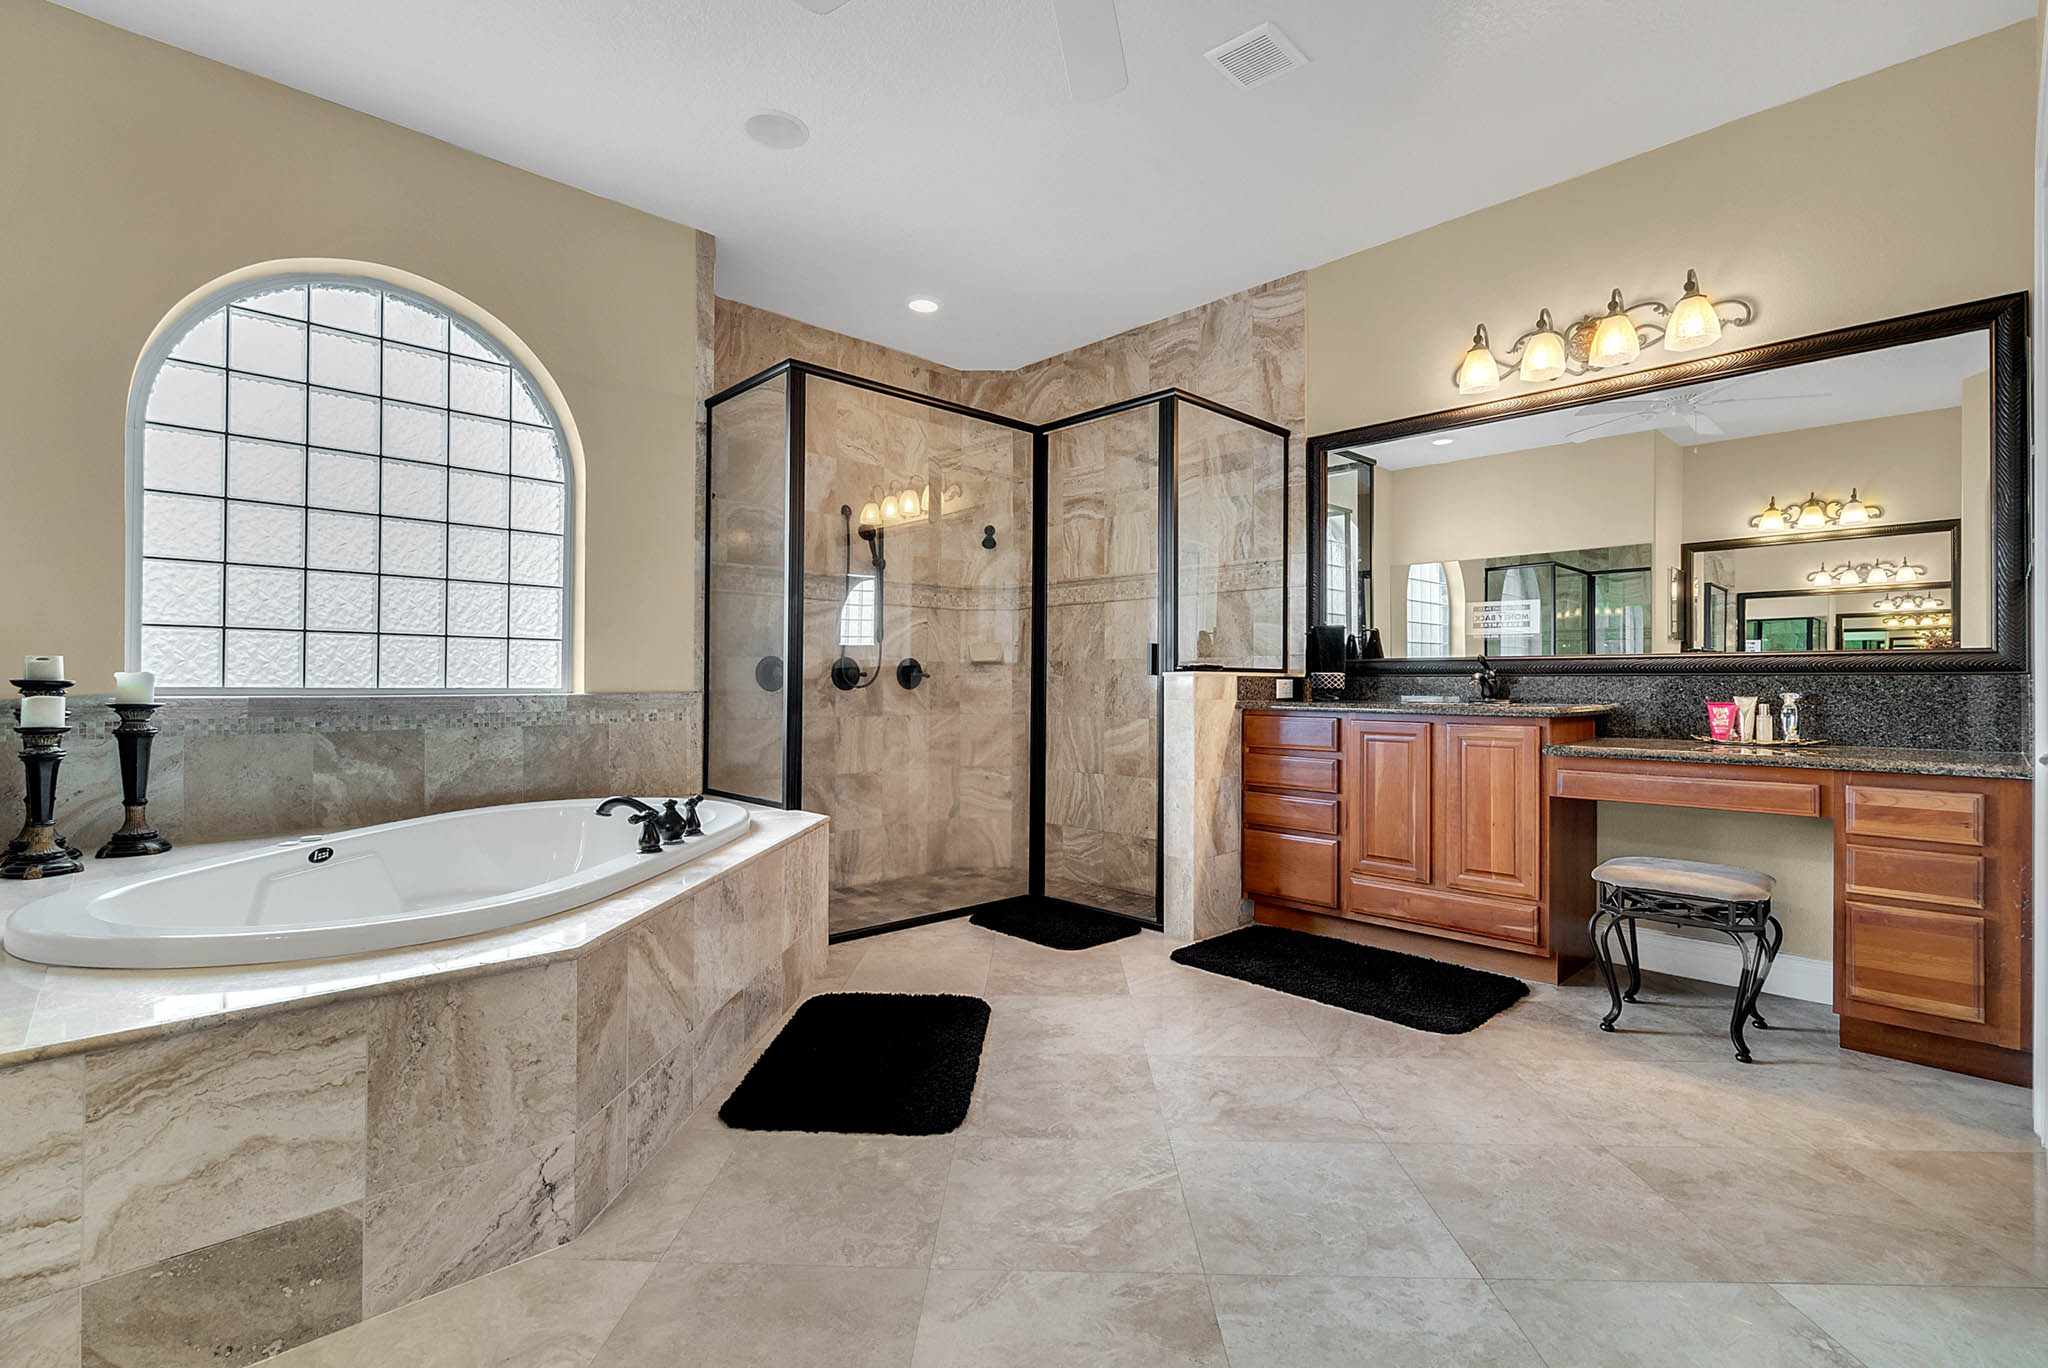 7919-Florida-Boys-Ranch-Rd--Groveland--FL-34736----22---Master-Bathroom.jpg